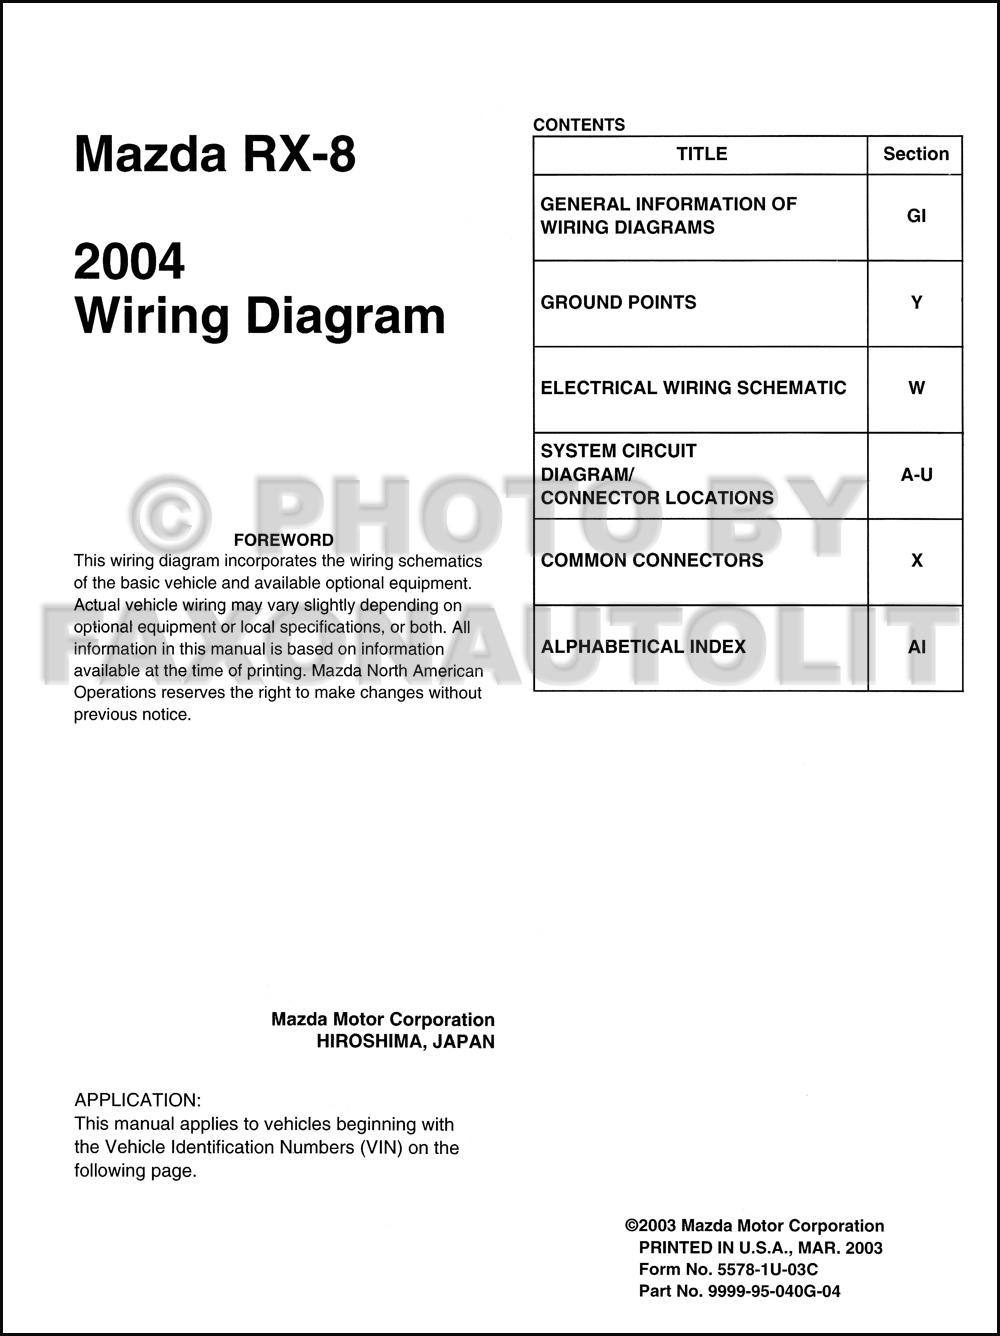 2004MazdaRX8OWD TOC 2004 mazda rx 8 wiring diagram manual original rx8 mazda rx8 wiring diagram at readyjetset.co